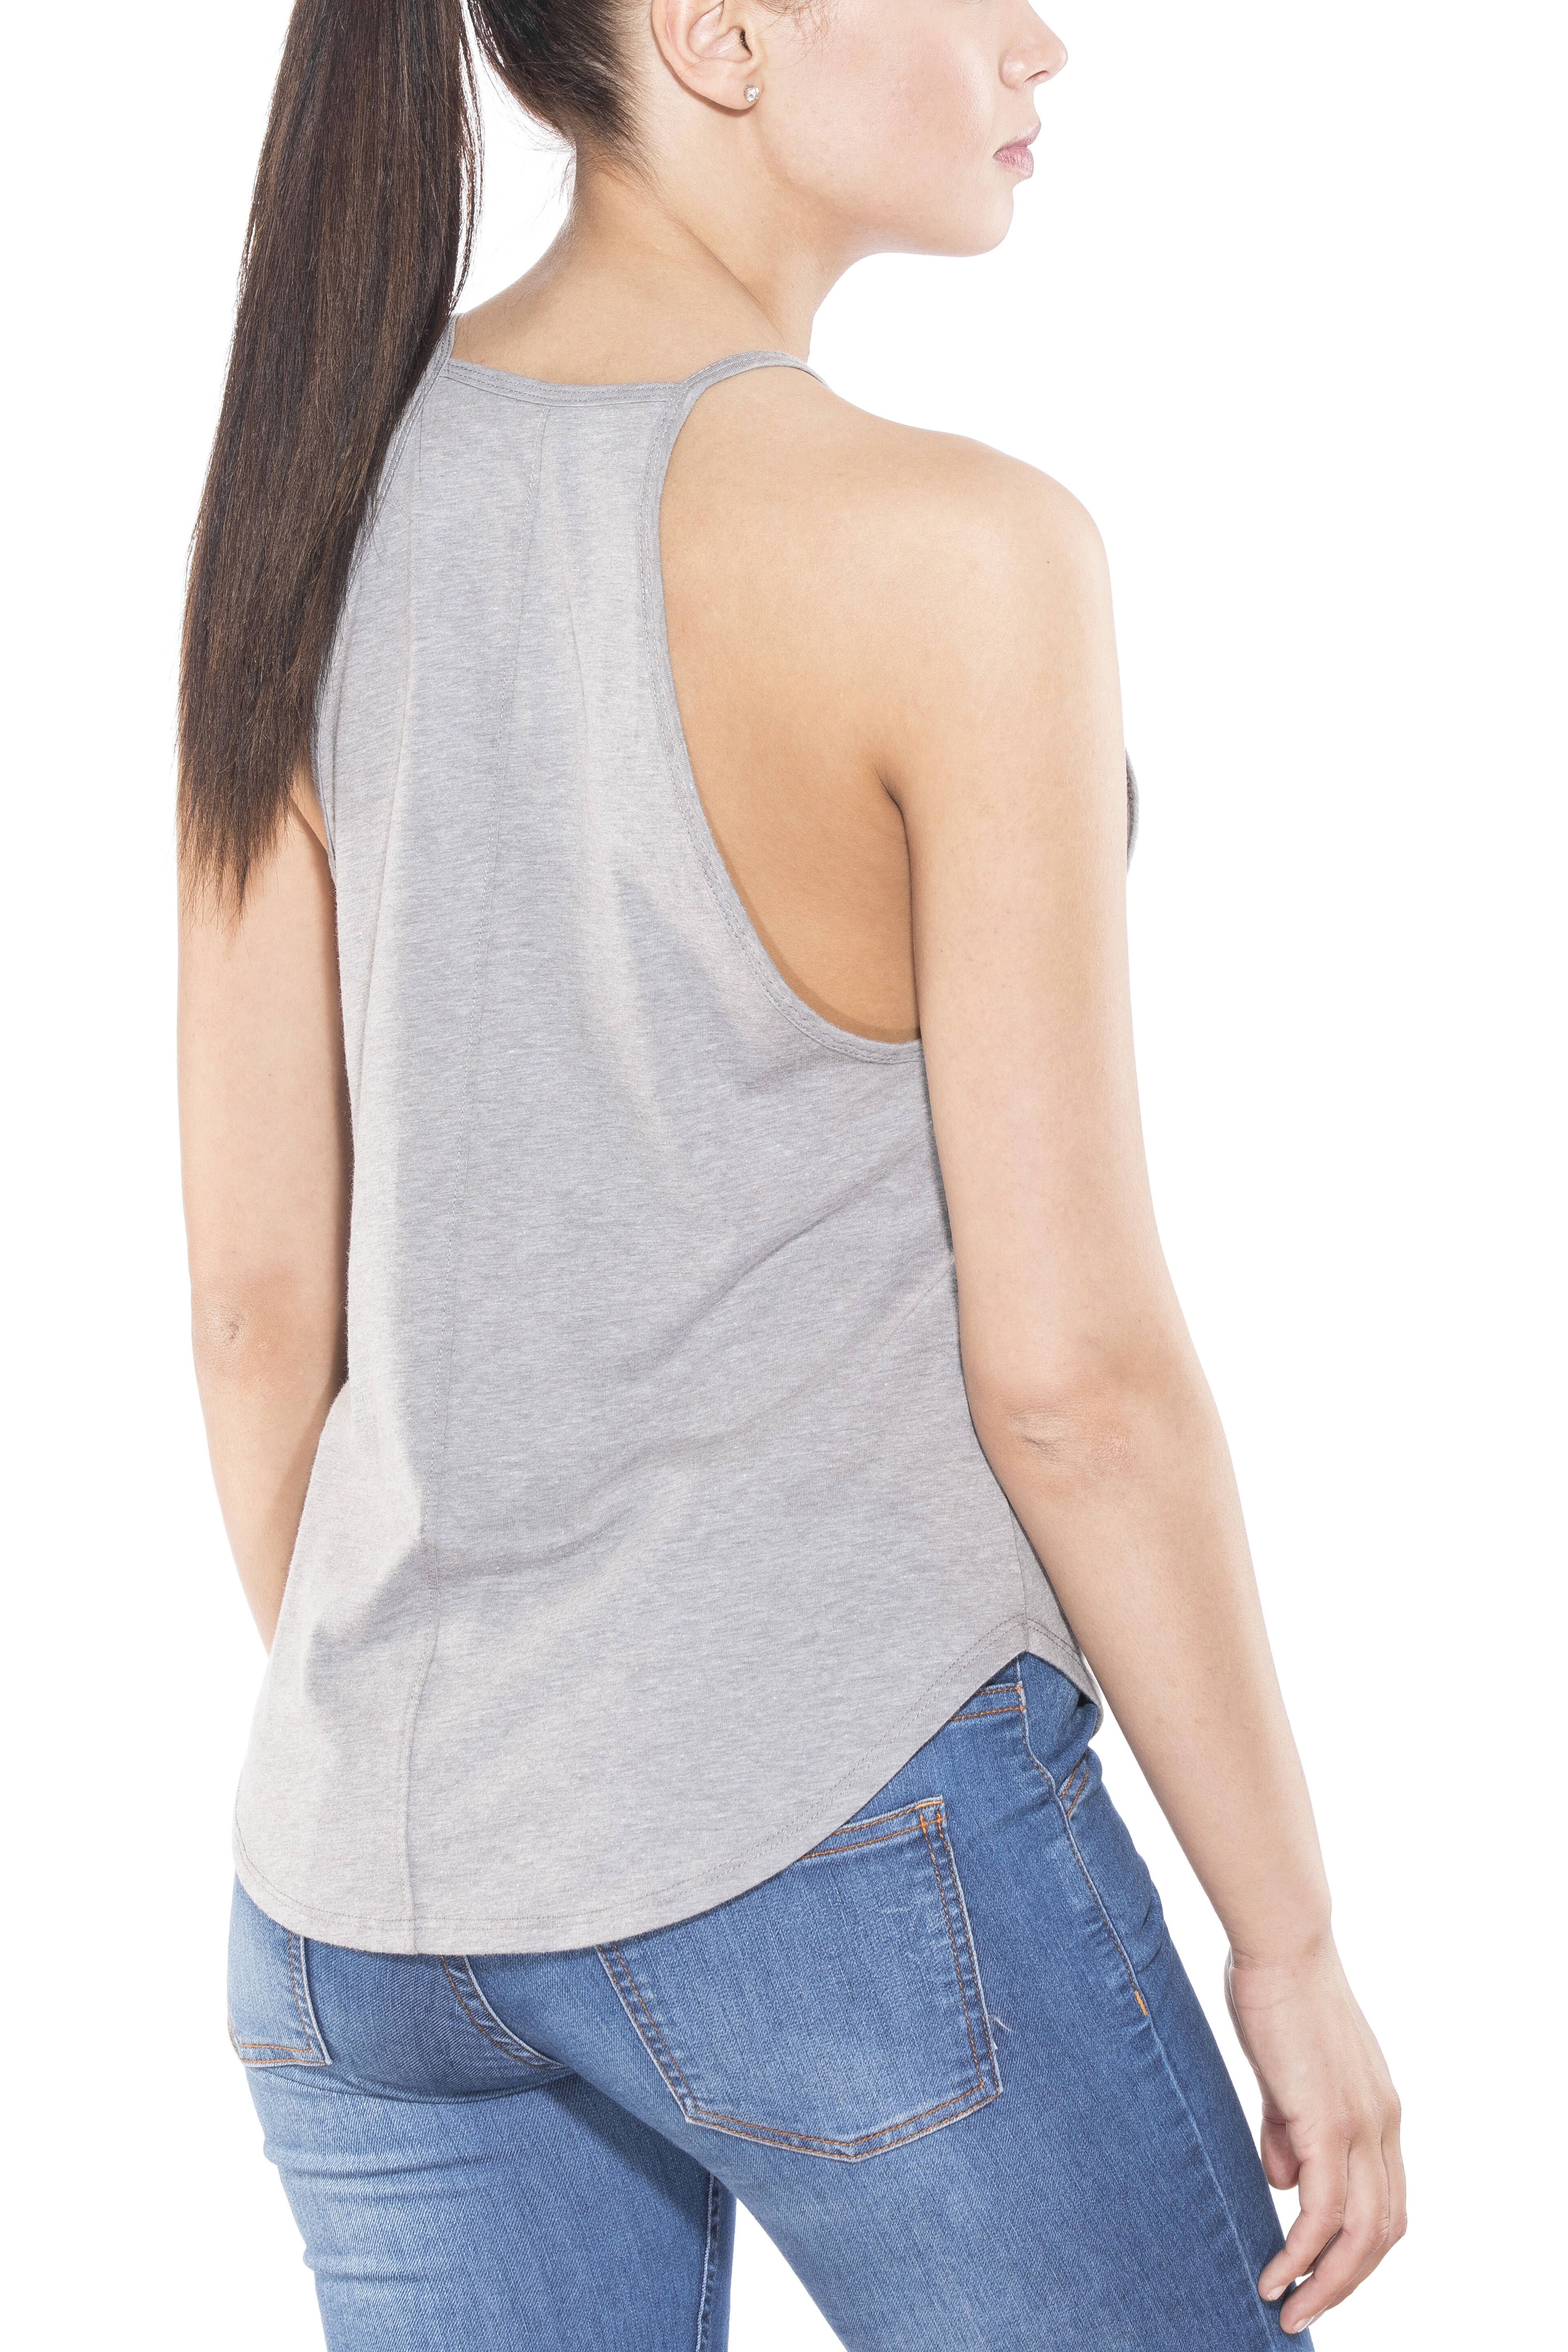 bd6061df6ed3b Prana Graphic You Tank Women Nature Up Heather Grey at Addnature.co.uk